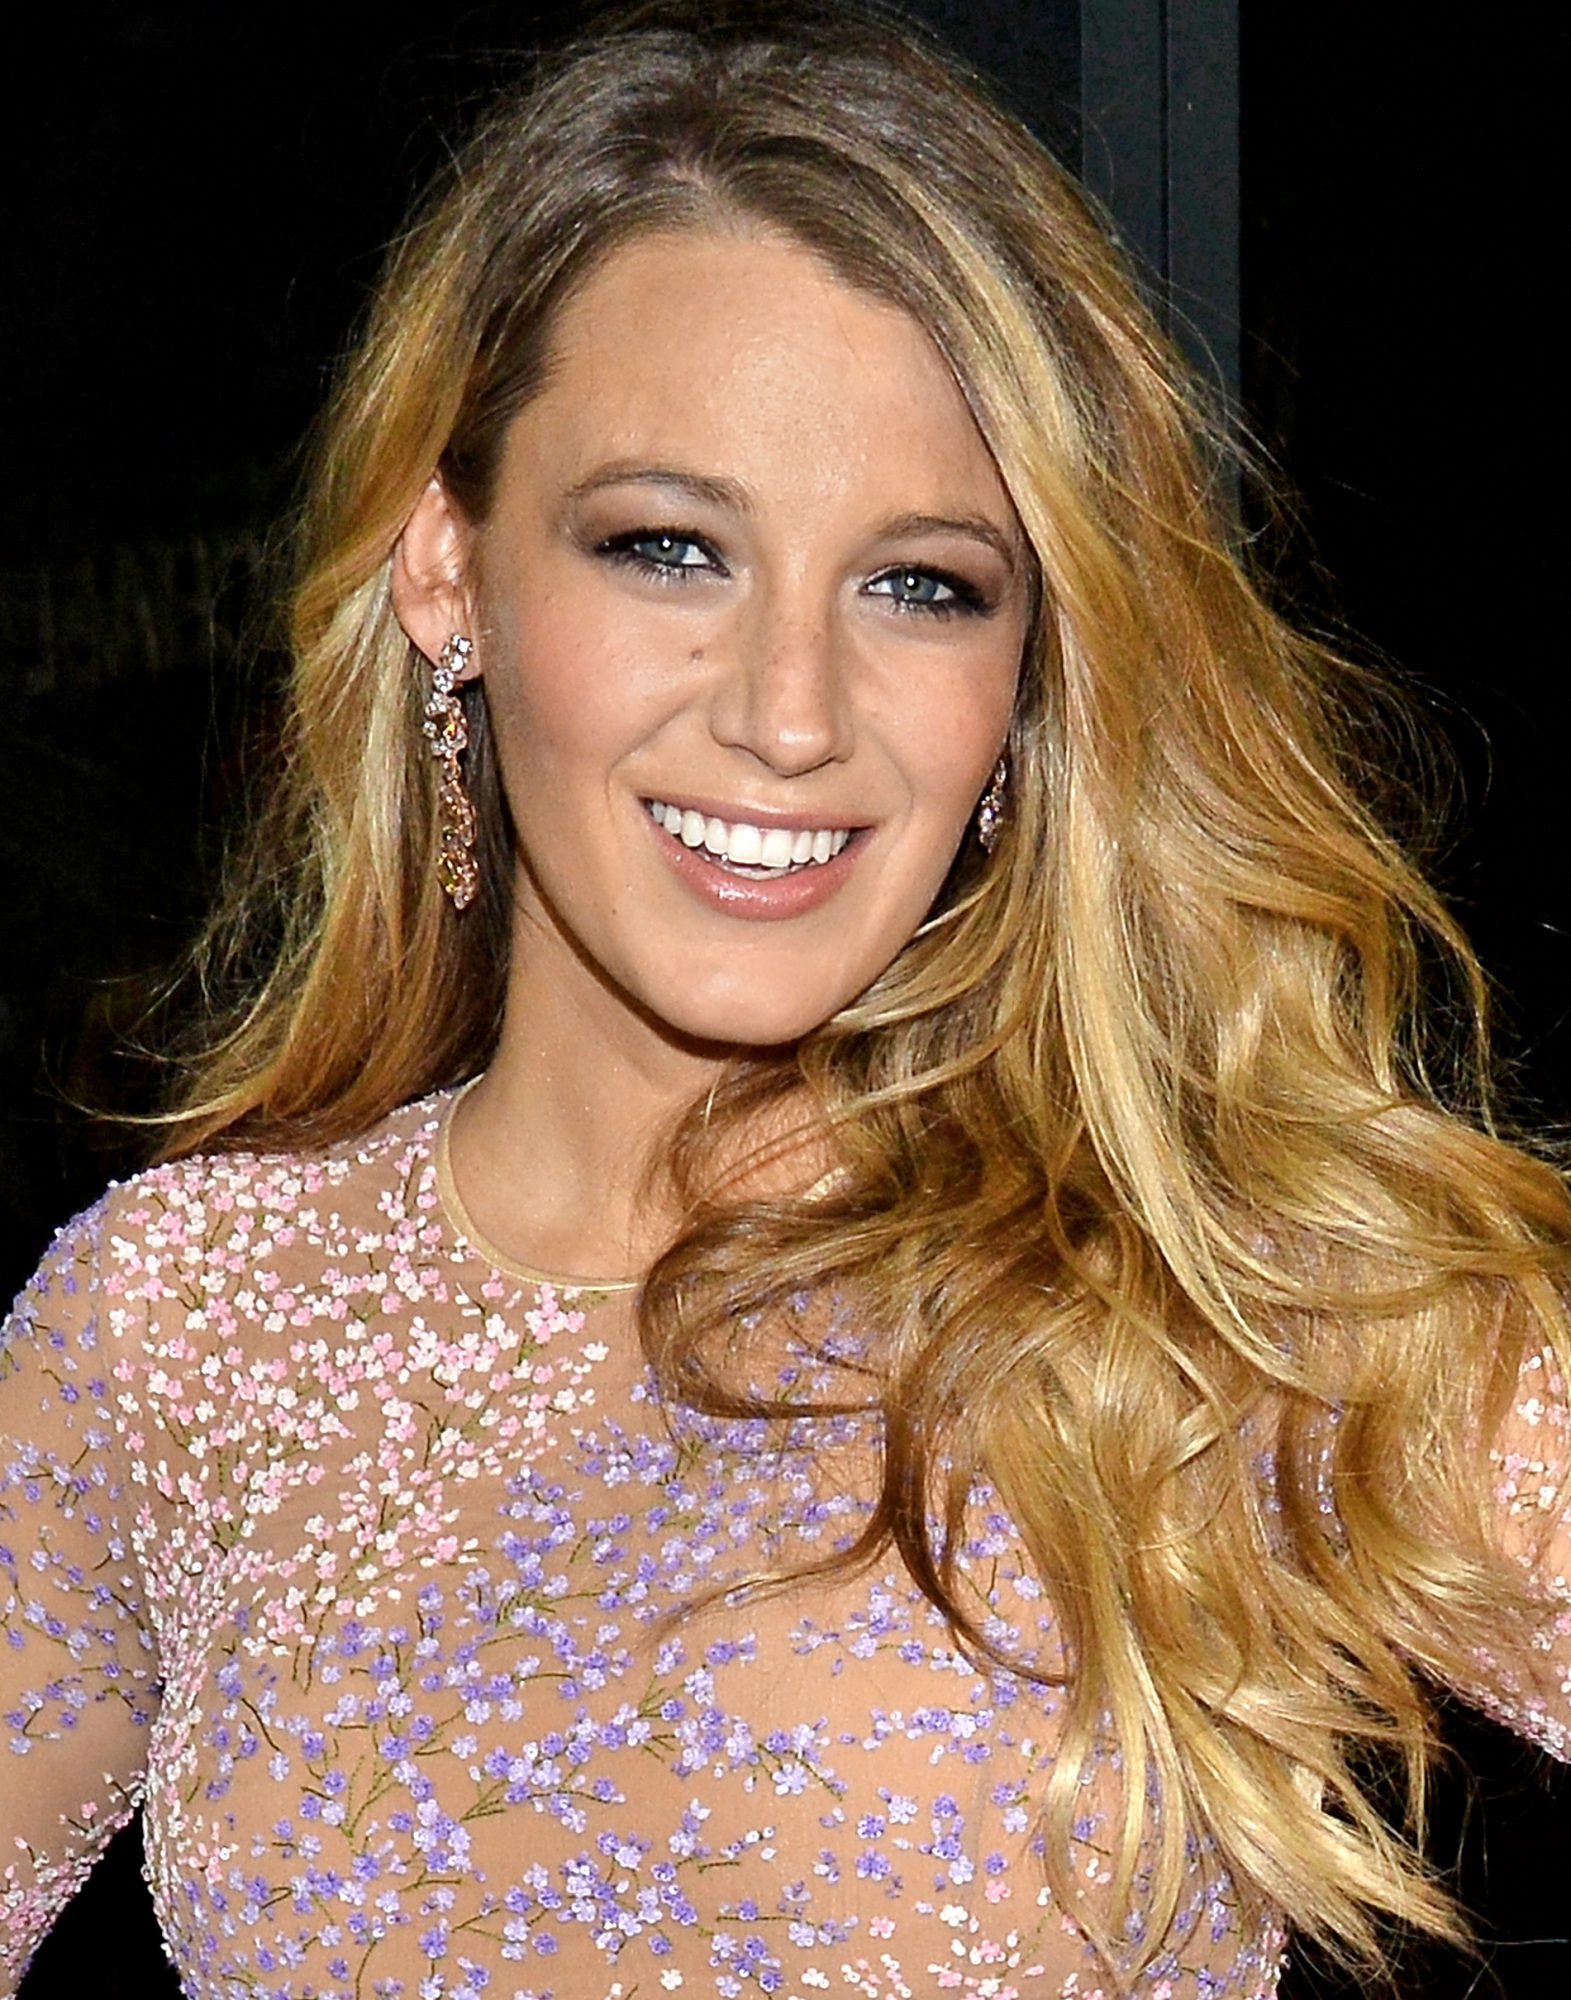 Blake Lively Shows Off Her New-Found Chair-Racing Talents